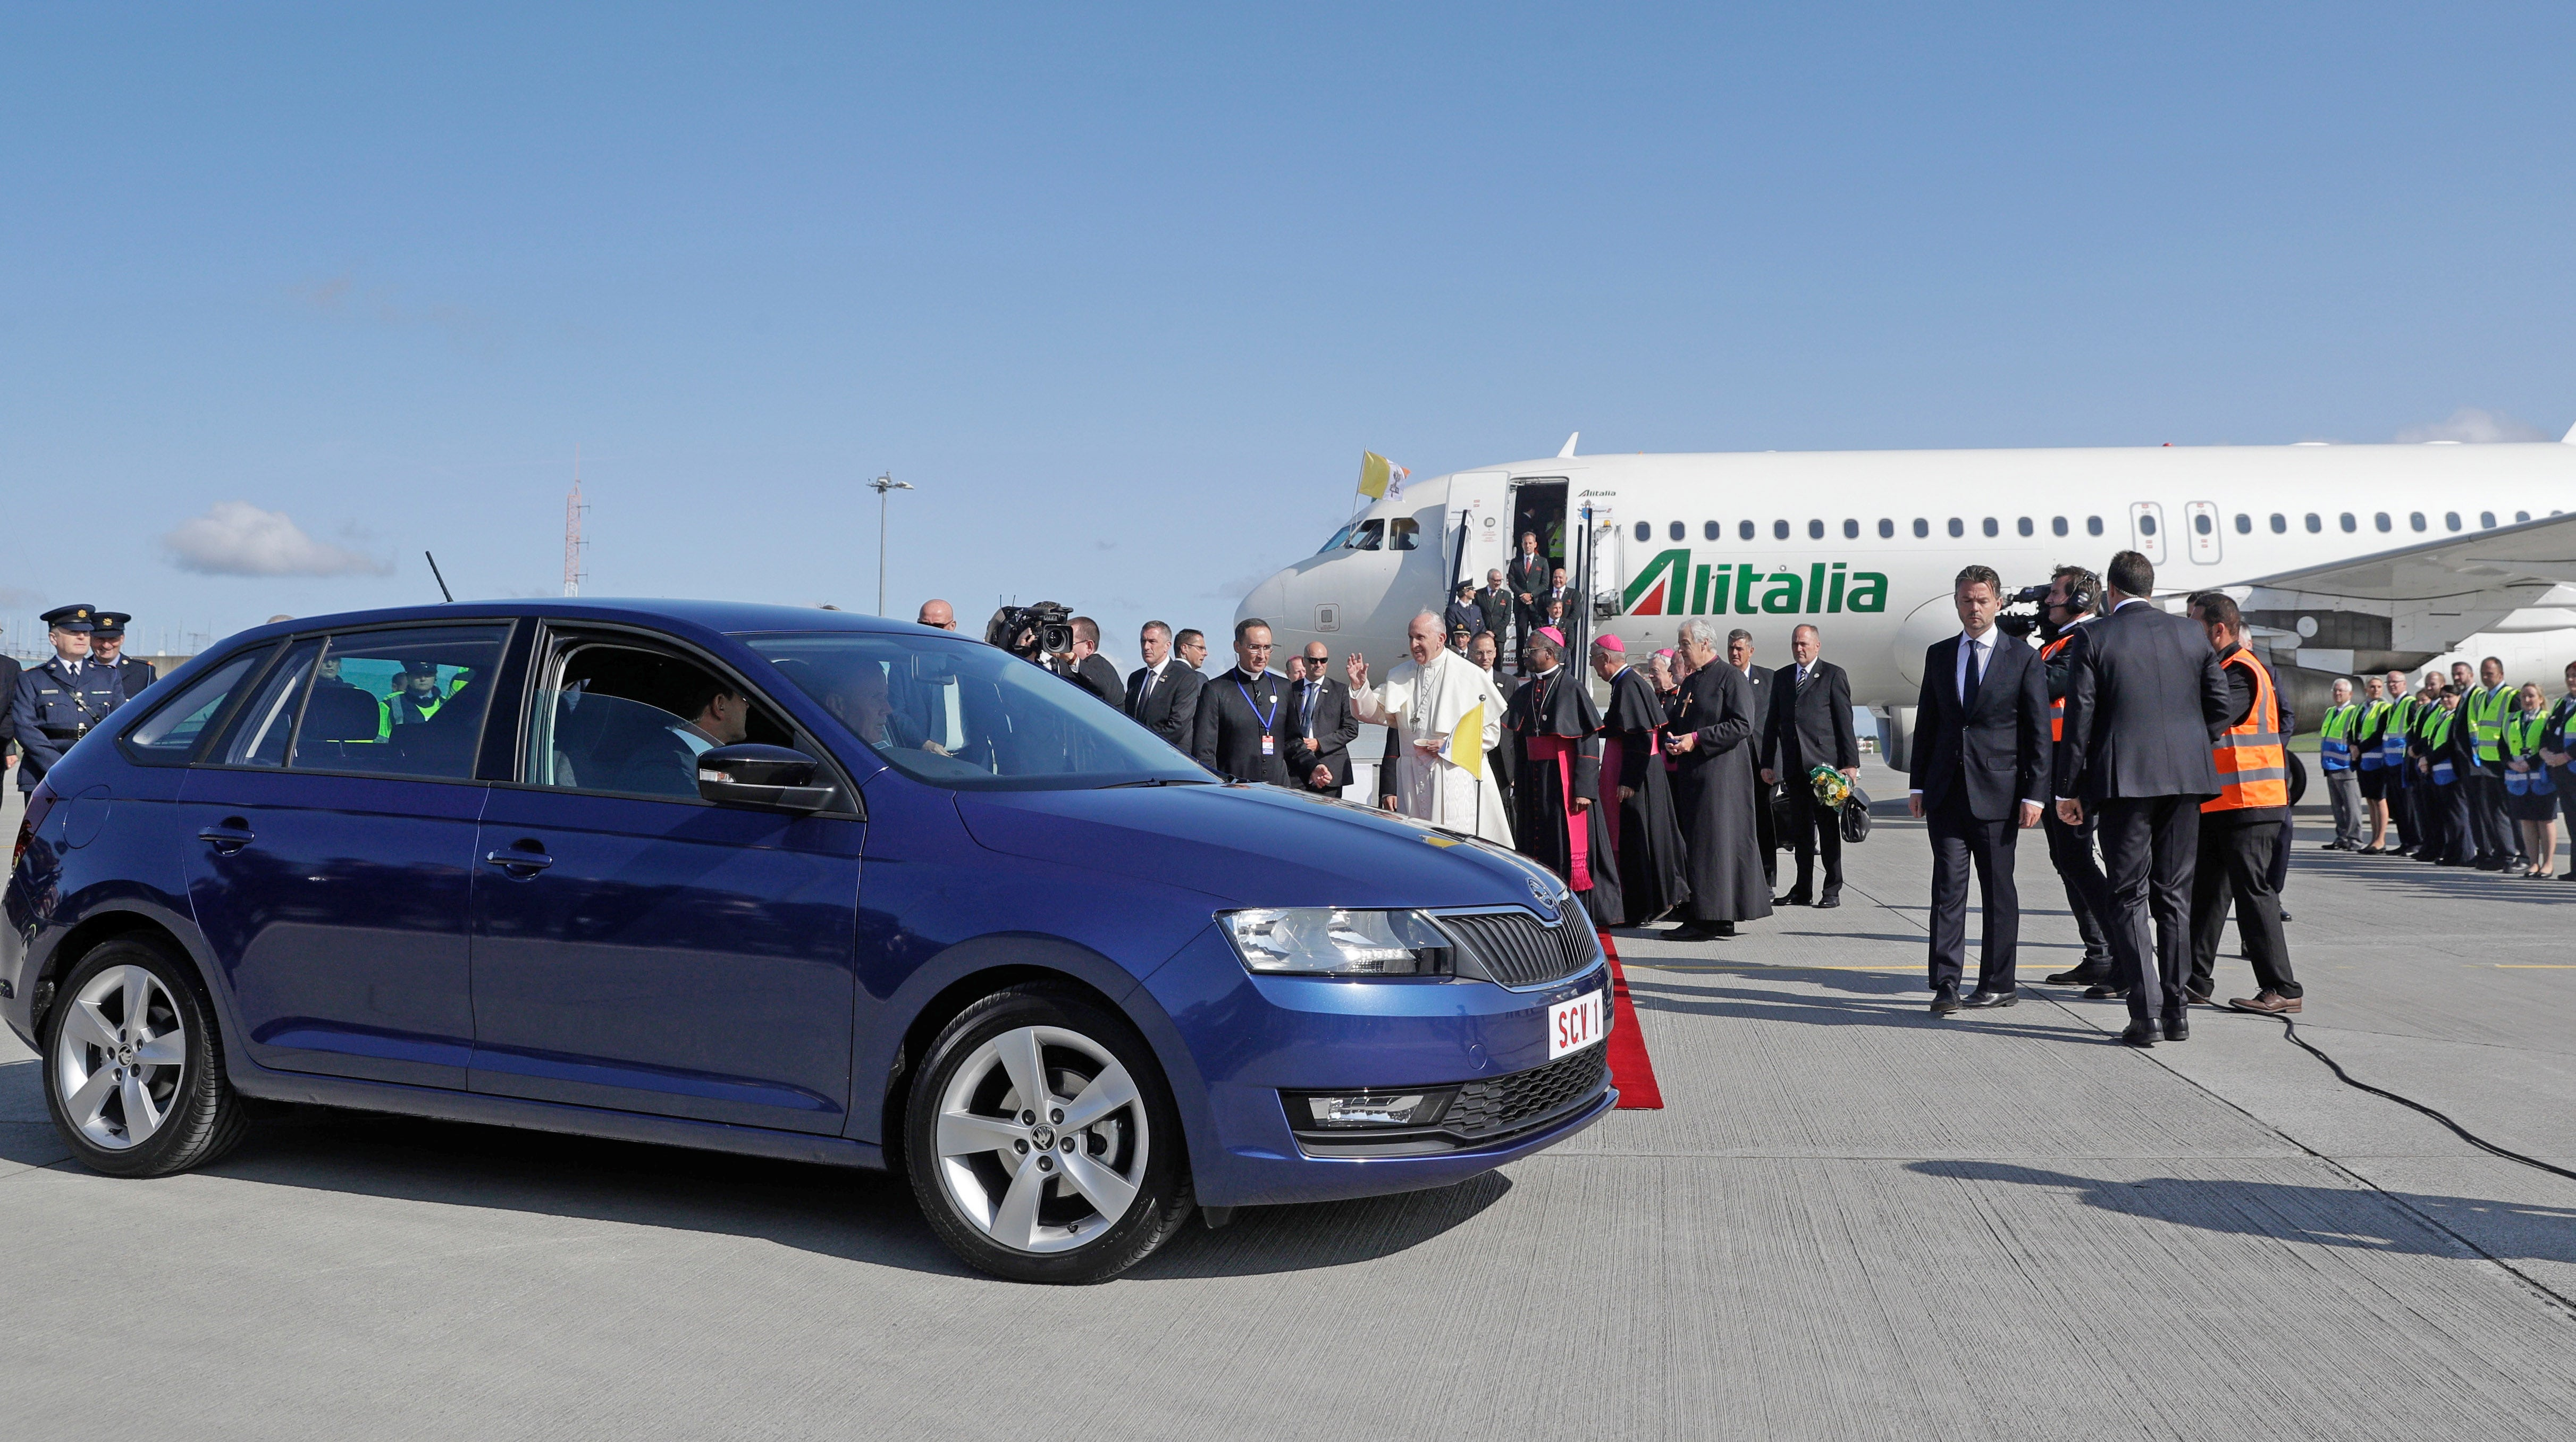 Here's The Pope Just Cruising In A Skoda Wagon